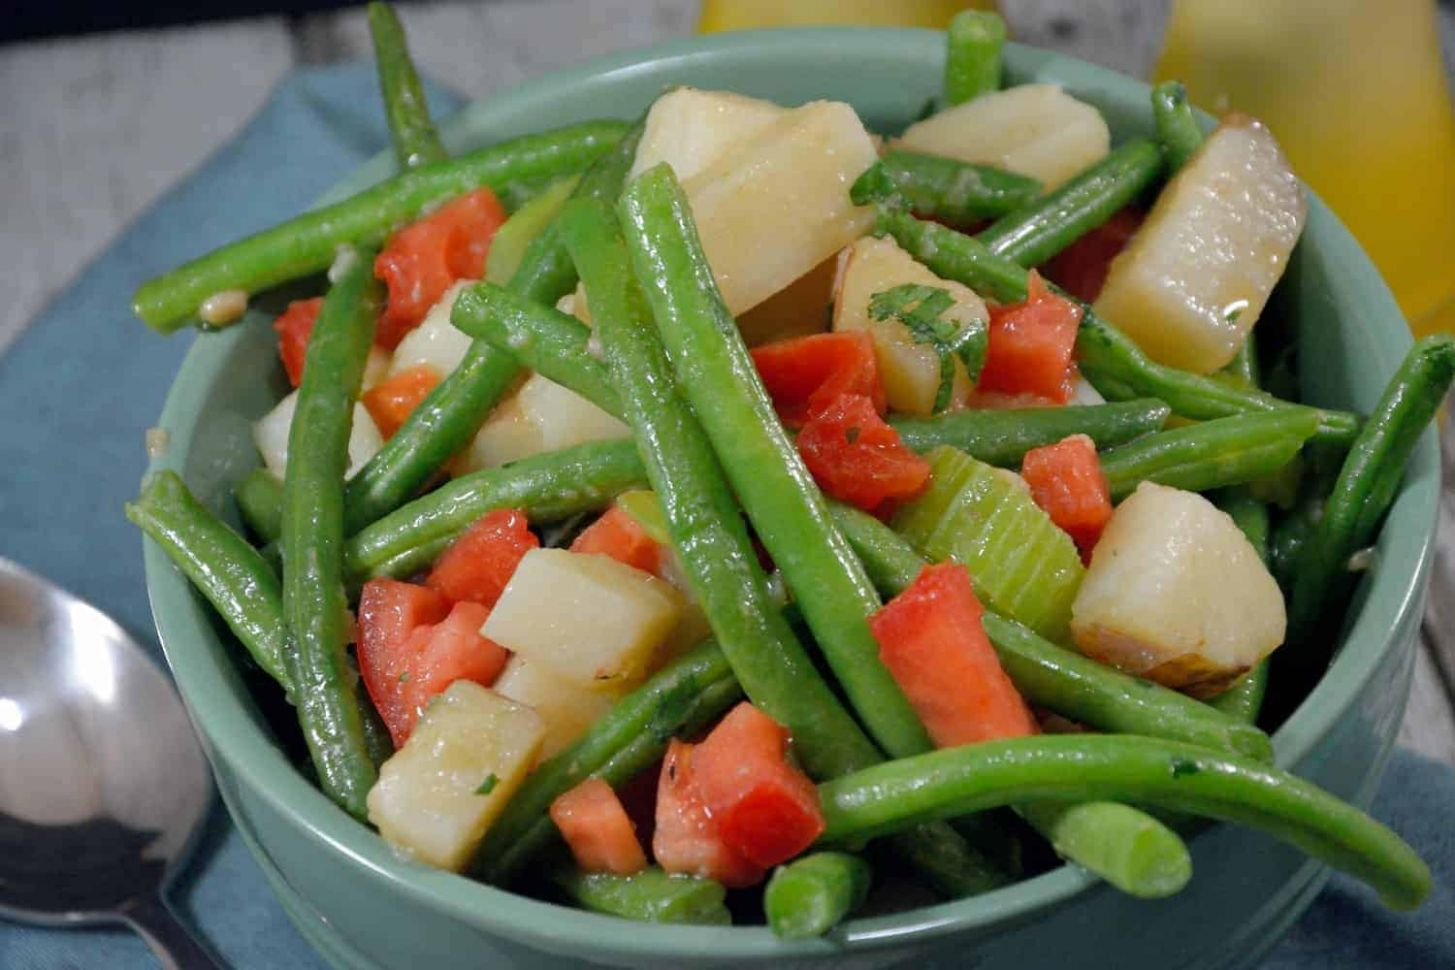 Mixed Vegetables - Recipes Easy Vegetable Side Dish